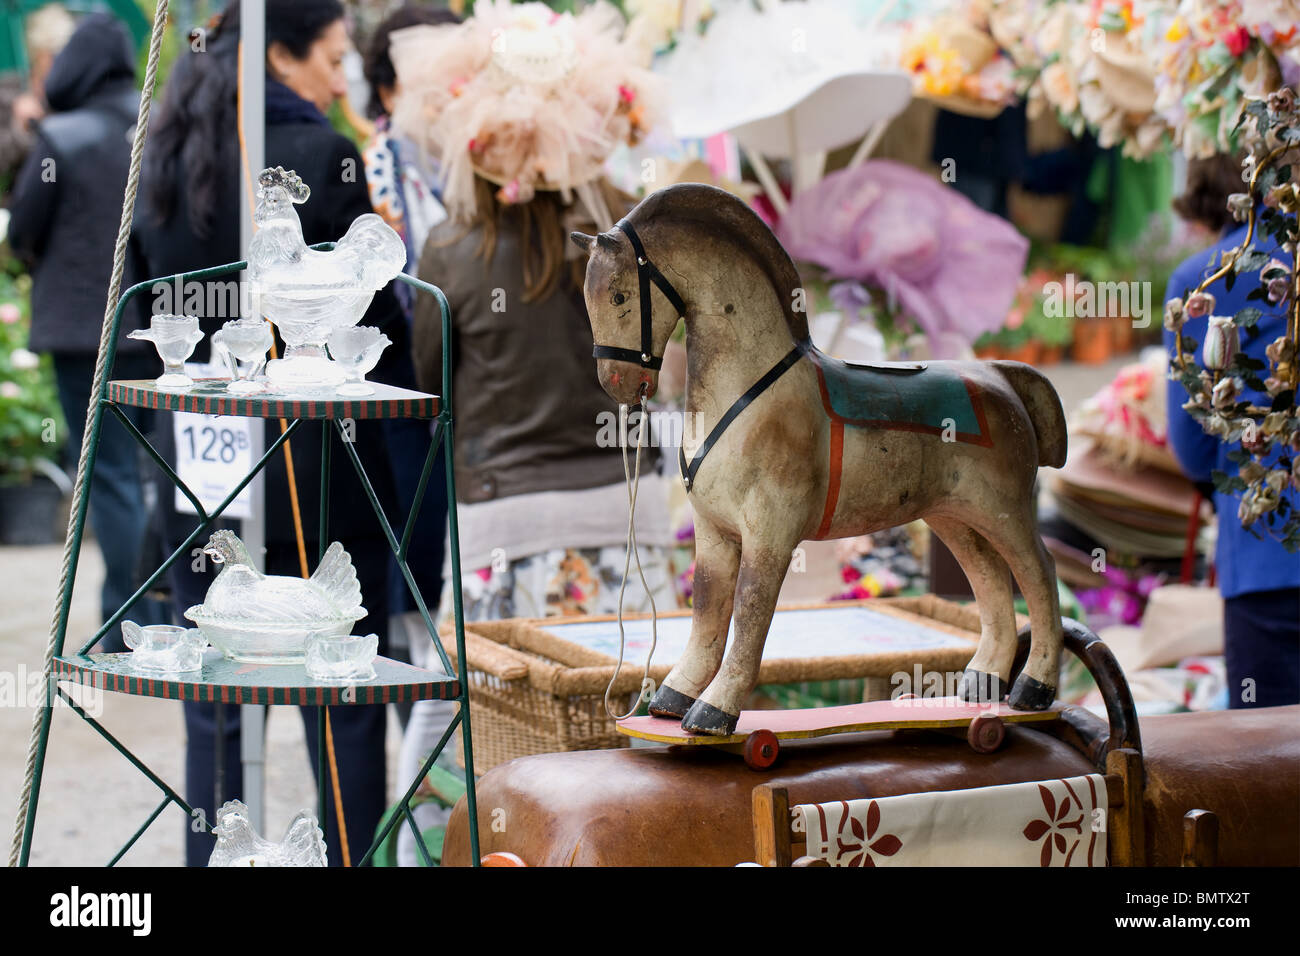 Milan, Horticultural Fair, antiques, horse, gifts, crafts, hobby, gardening, flowers, green, nature, Stock Photo